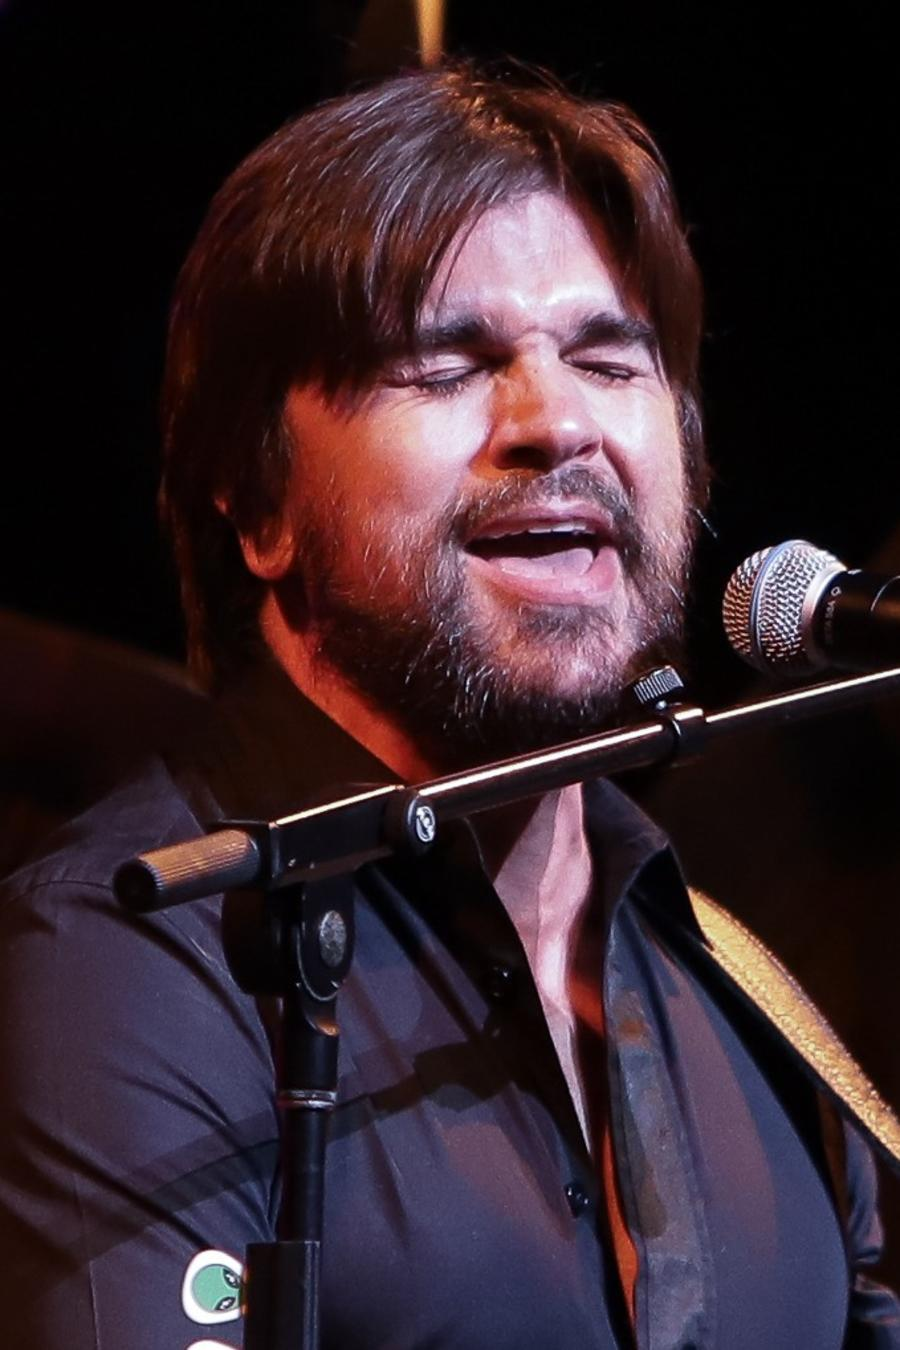 Juanes performing live at a show